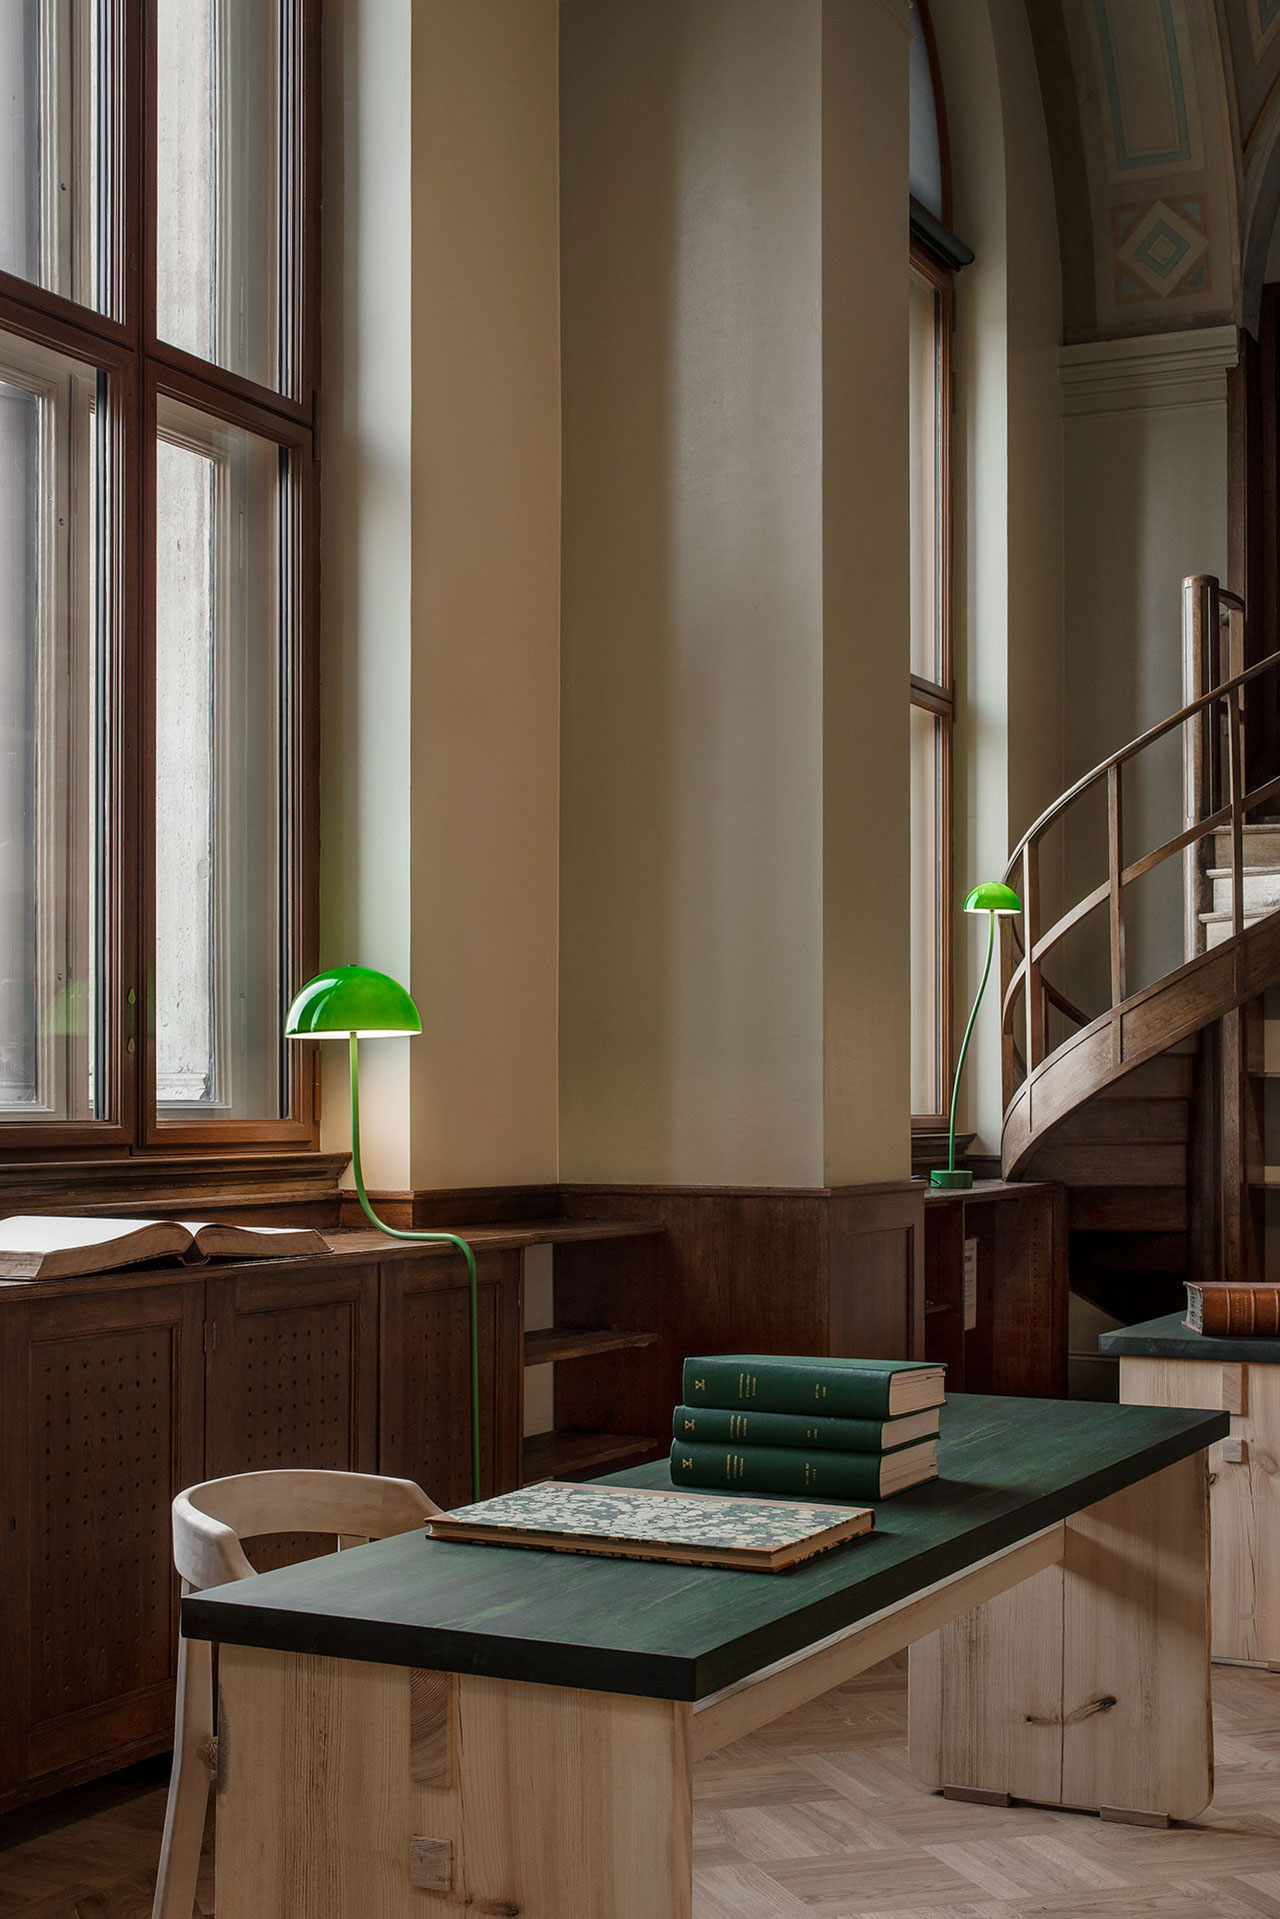 Library Lamp by Front design produced by Zero. Photo by Andy Liffner.